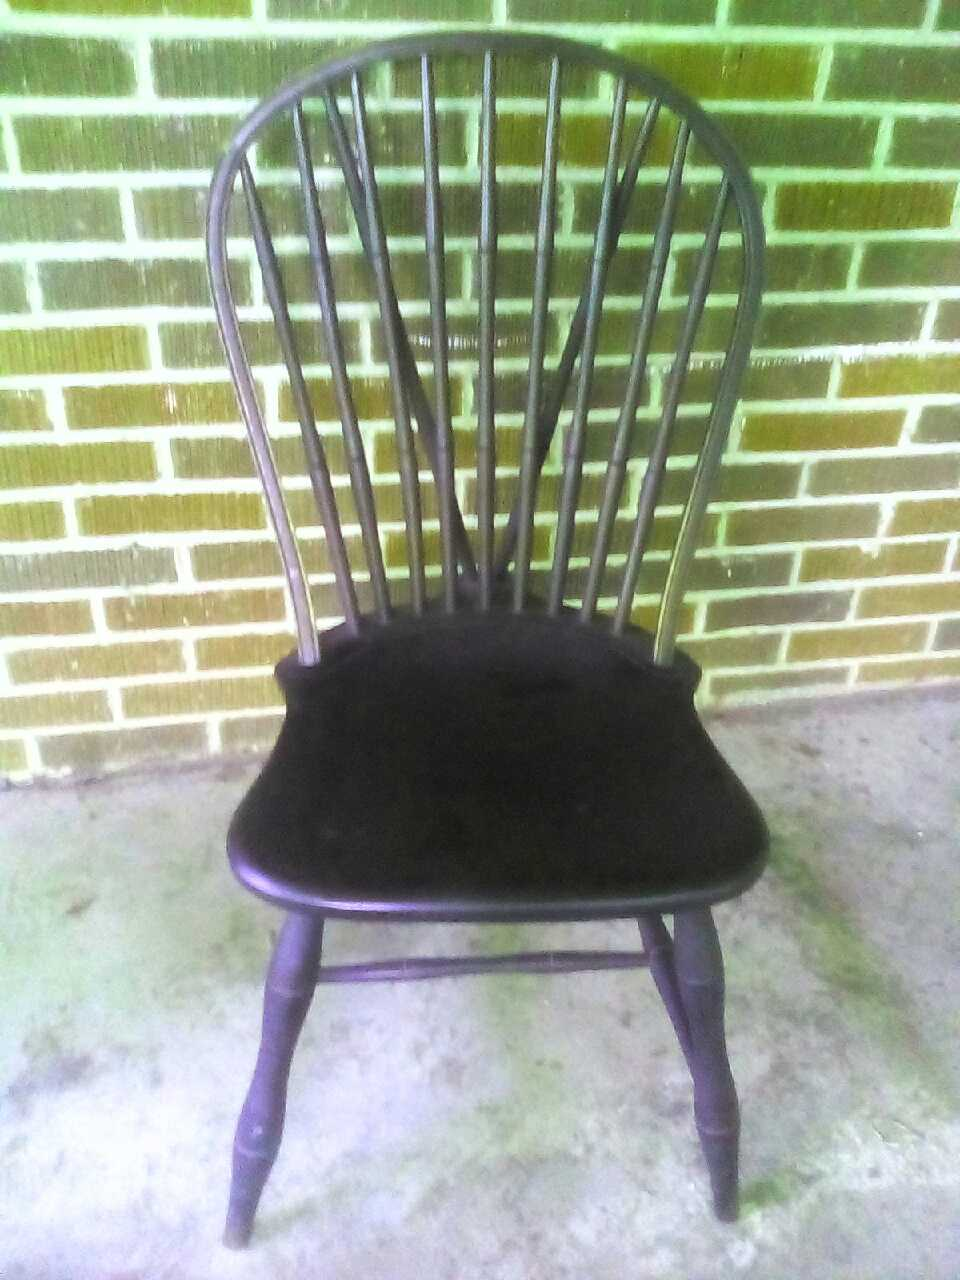 Home And Garden Products In Greenville Sc Letgo